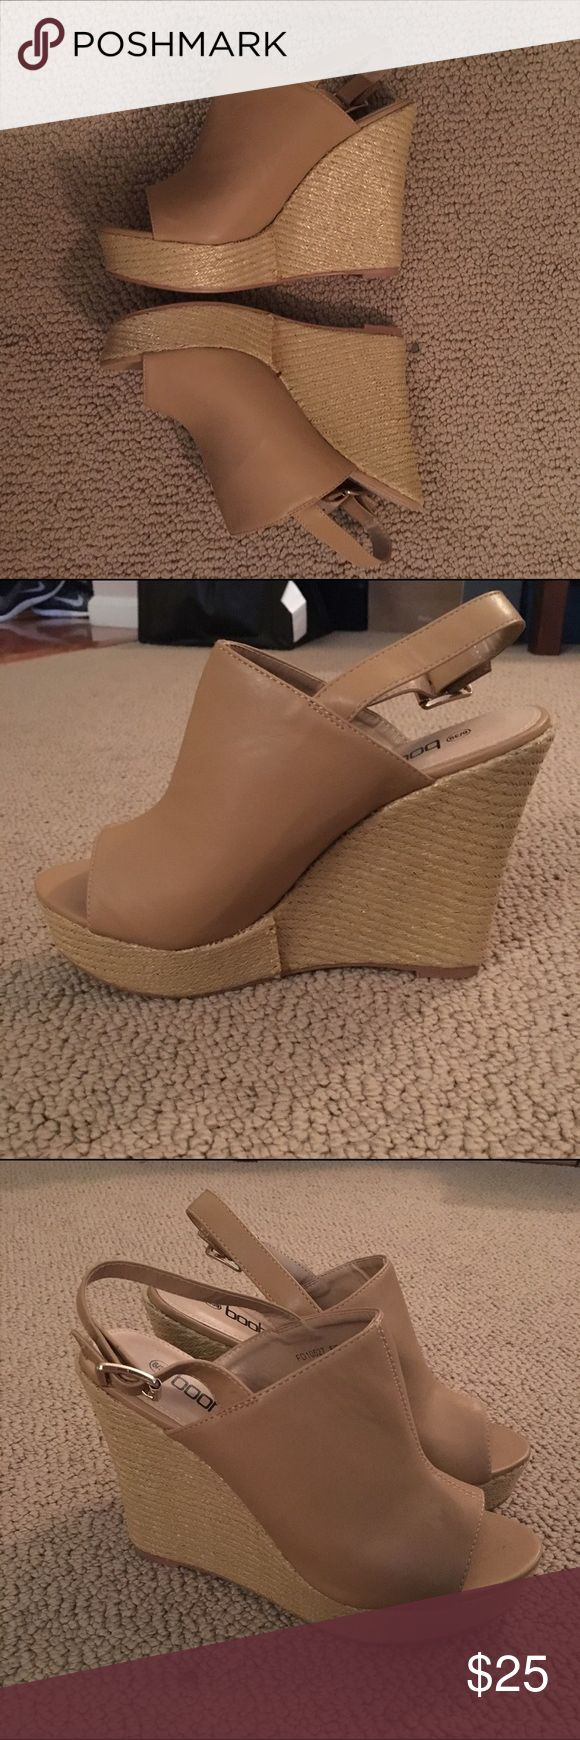 Nude Wedges These are nude espadrille wedges from Boohoo. Fits sizes 8 and 8.5. Never been worn. Boohoo Shoes Wedges